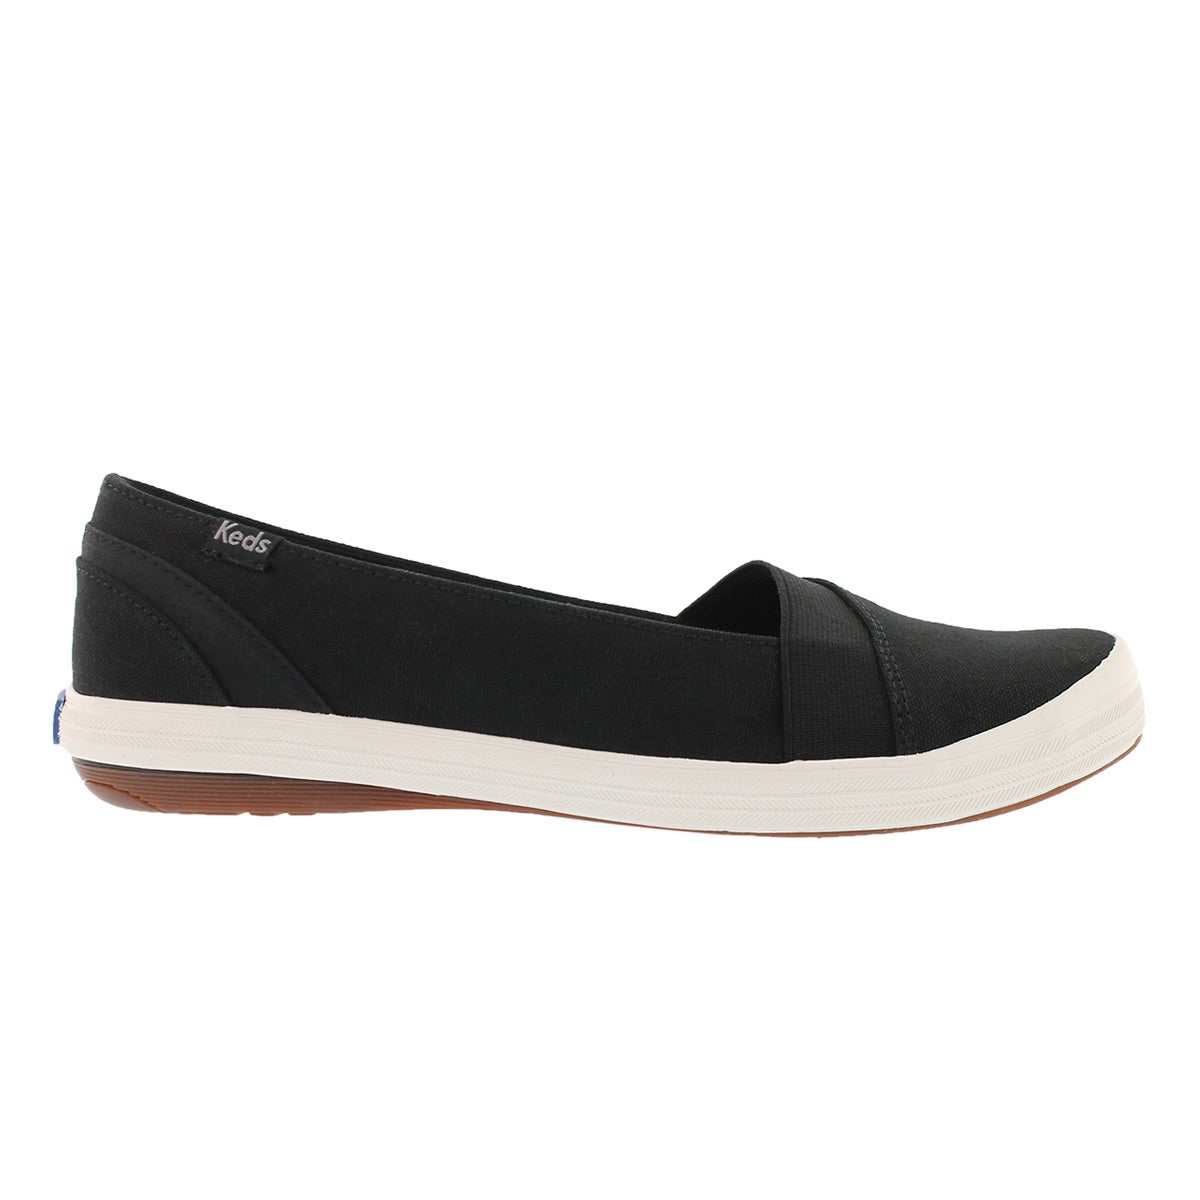 Lds Cali black casual slip on